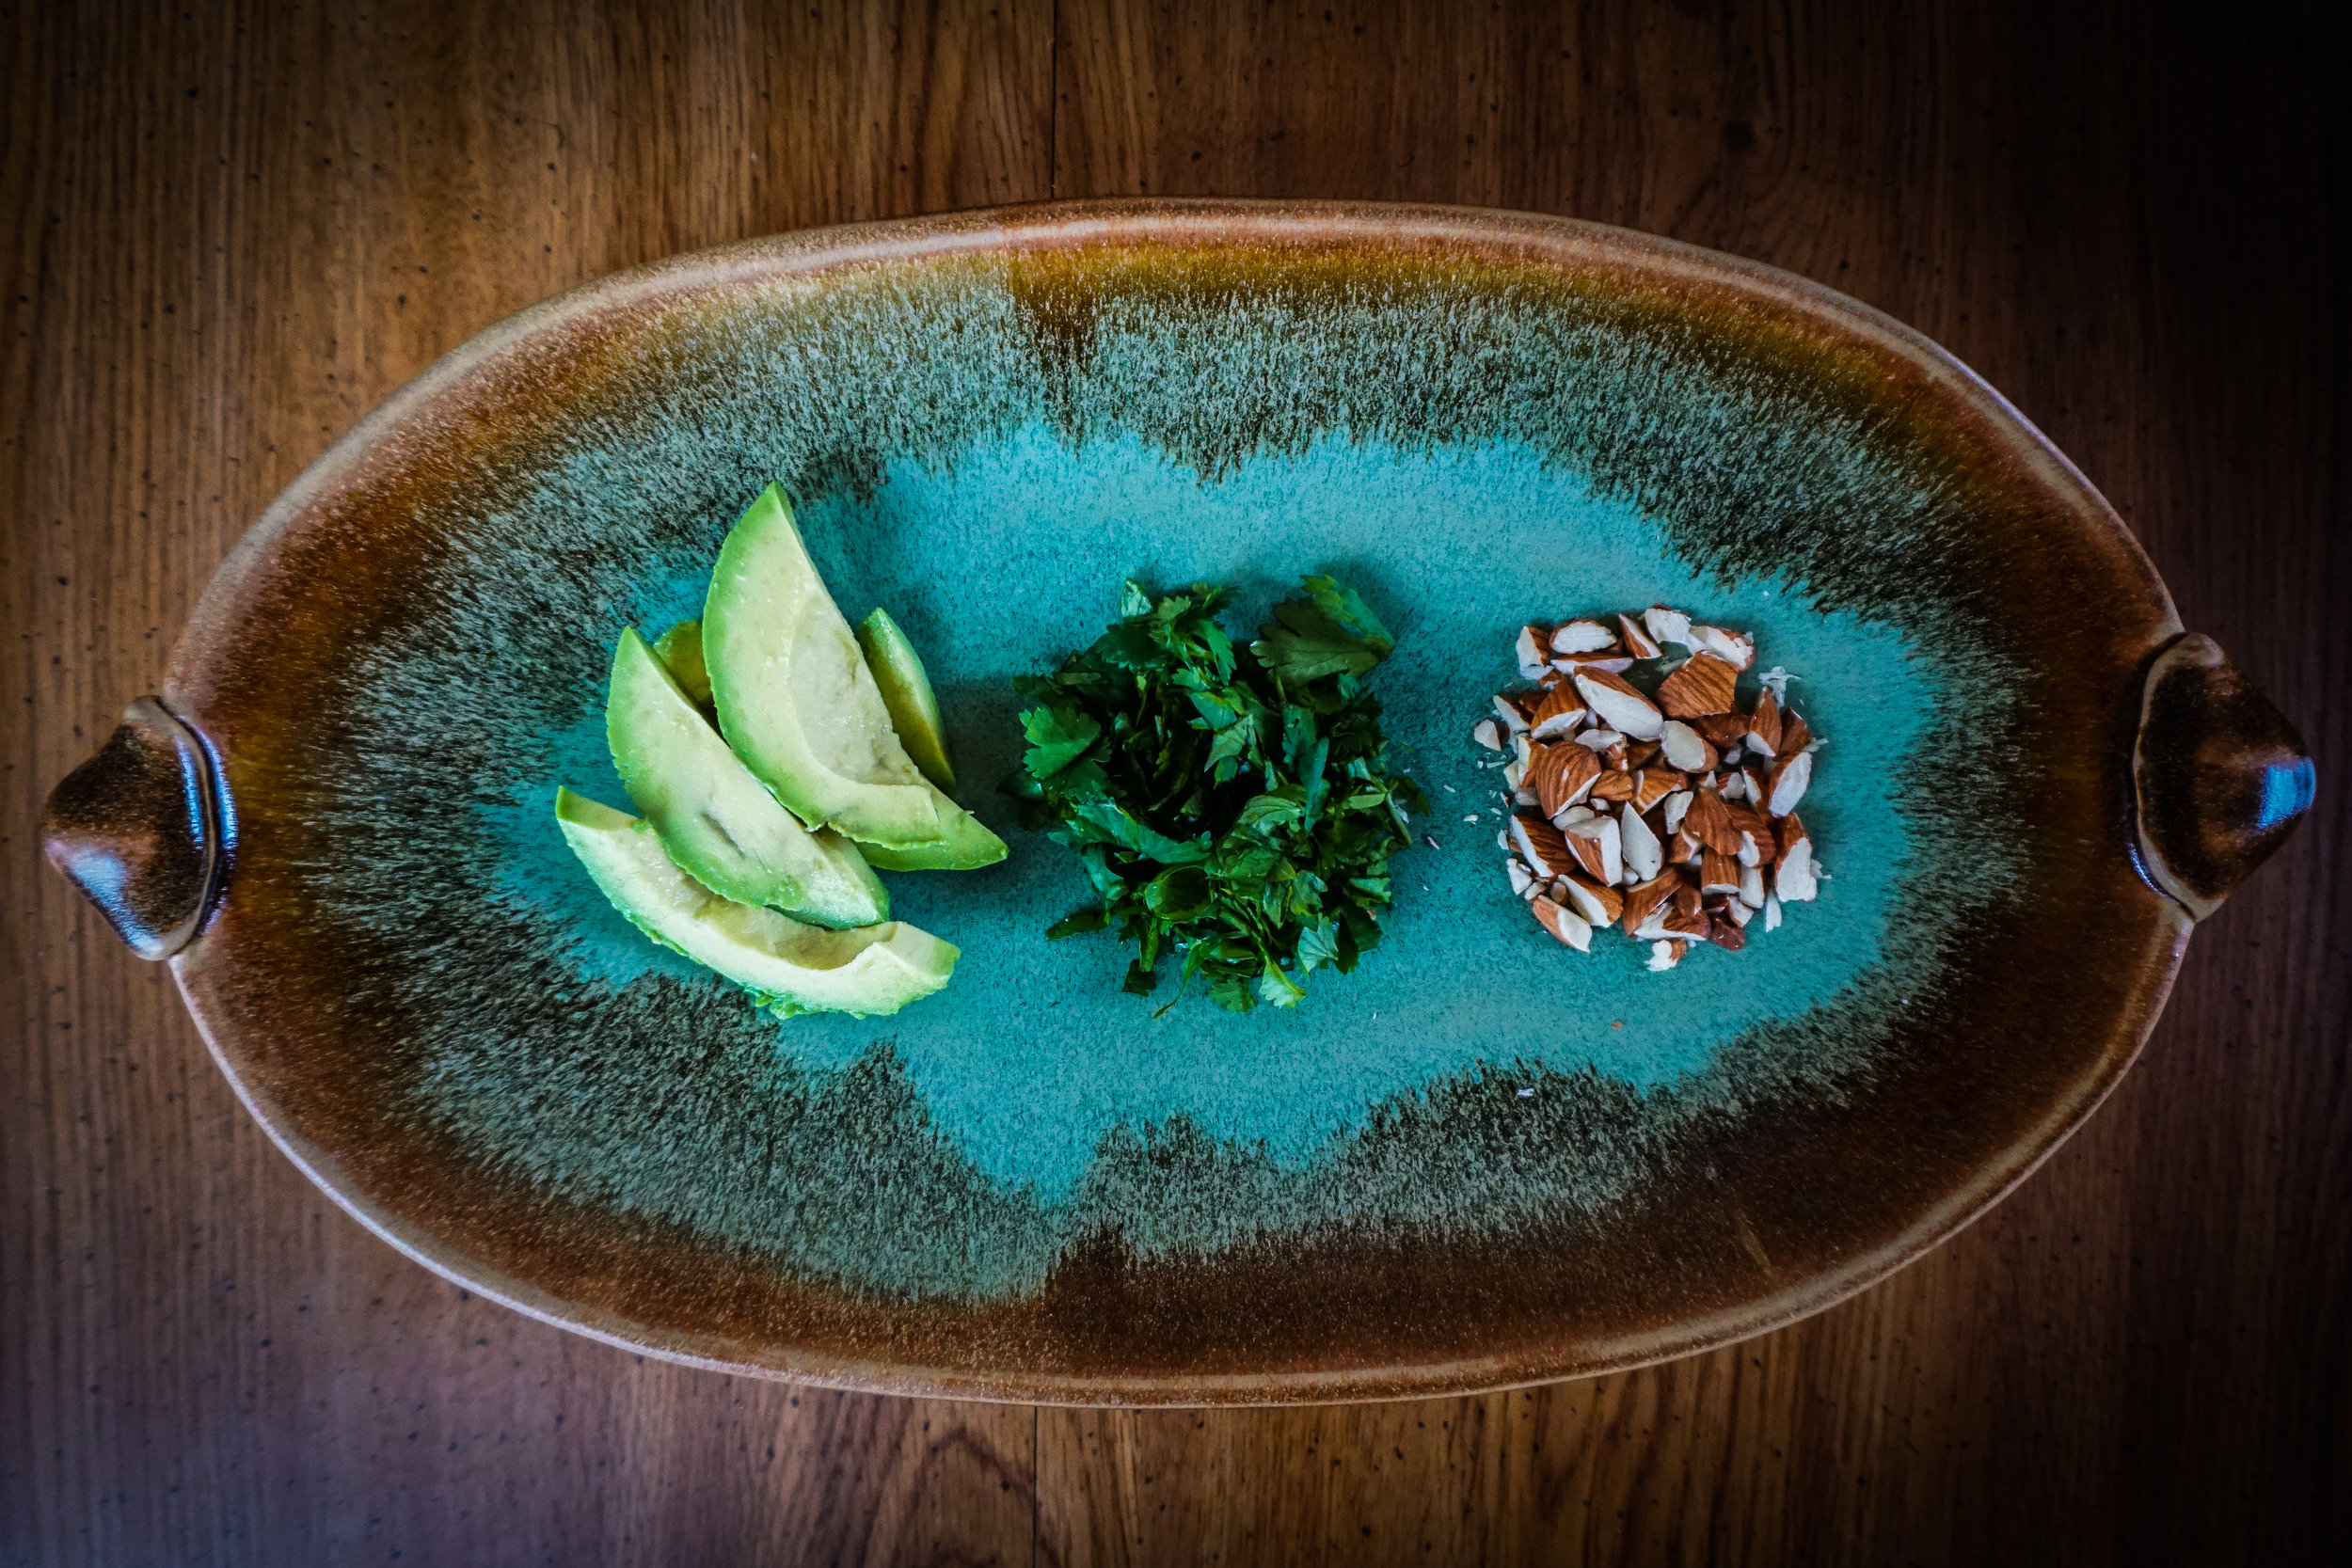 For garnish I chopped up almonds and cilantro and sliced some avocado.